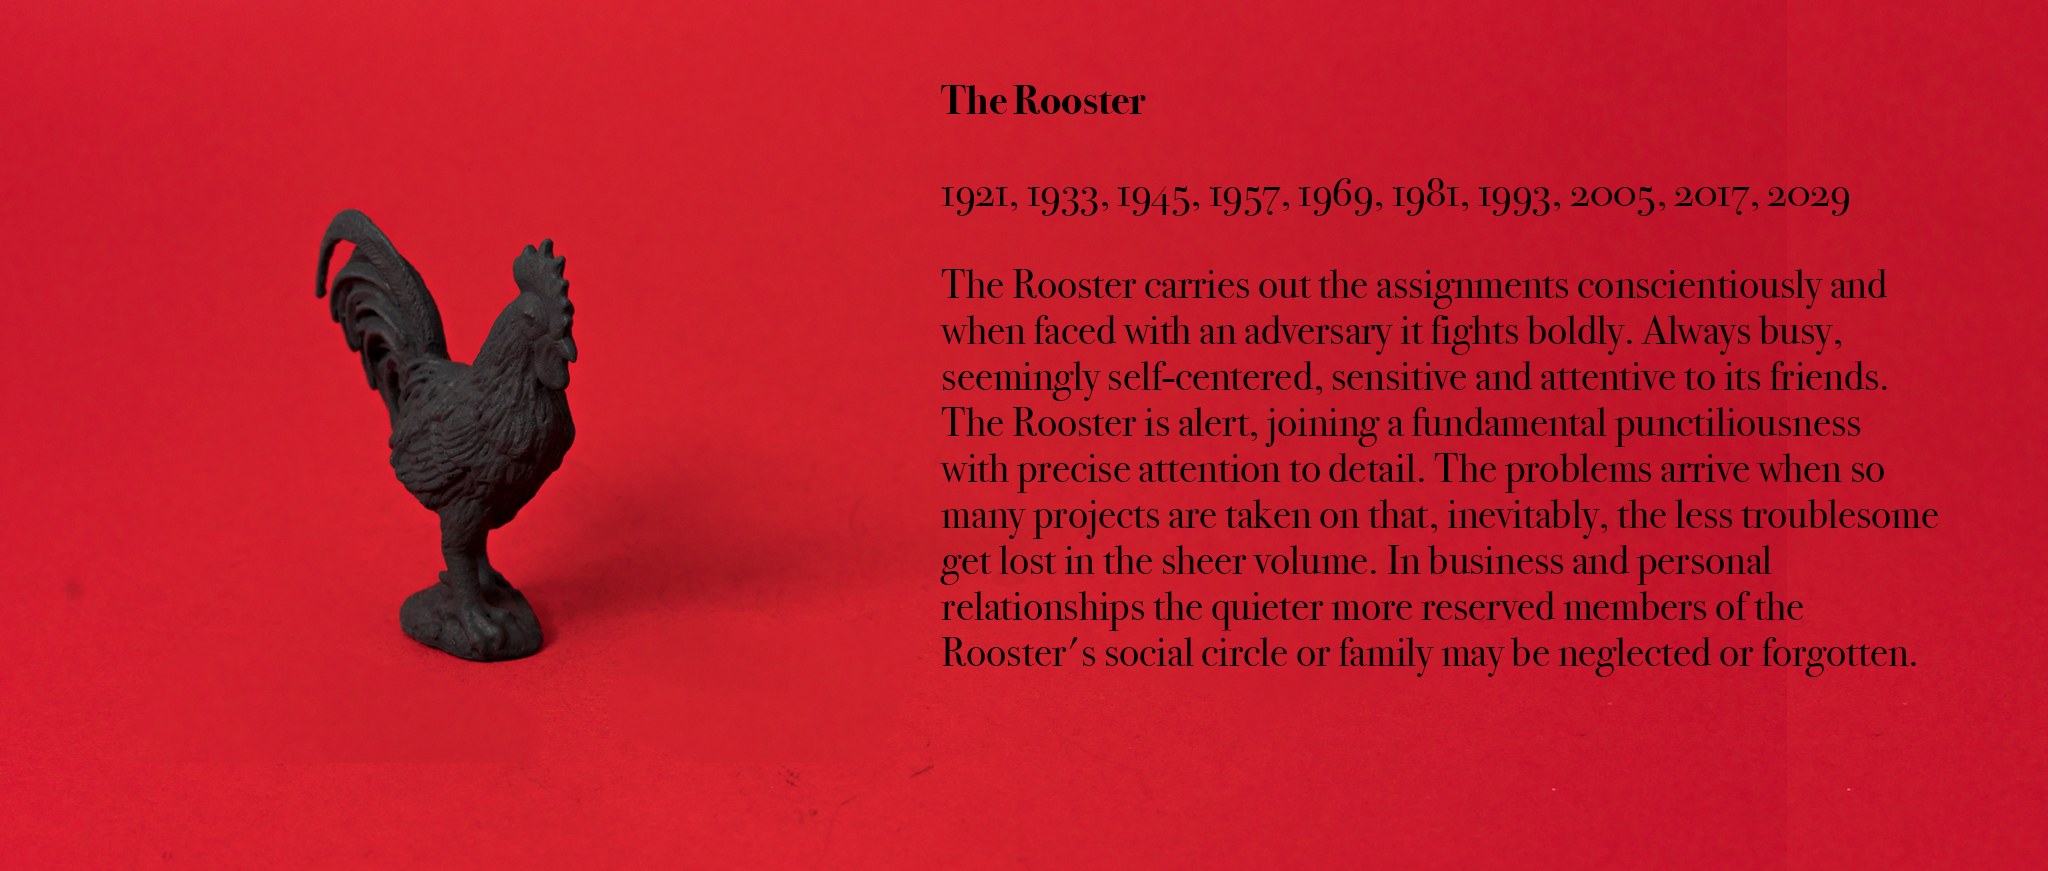 10. Rooster